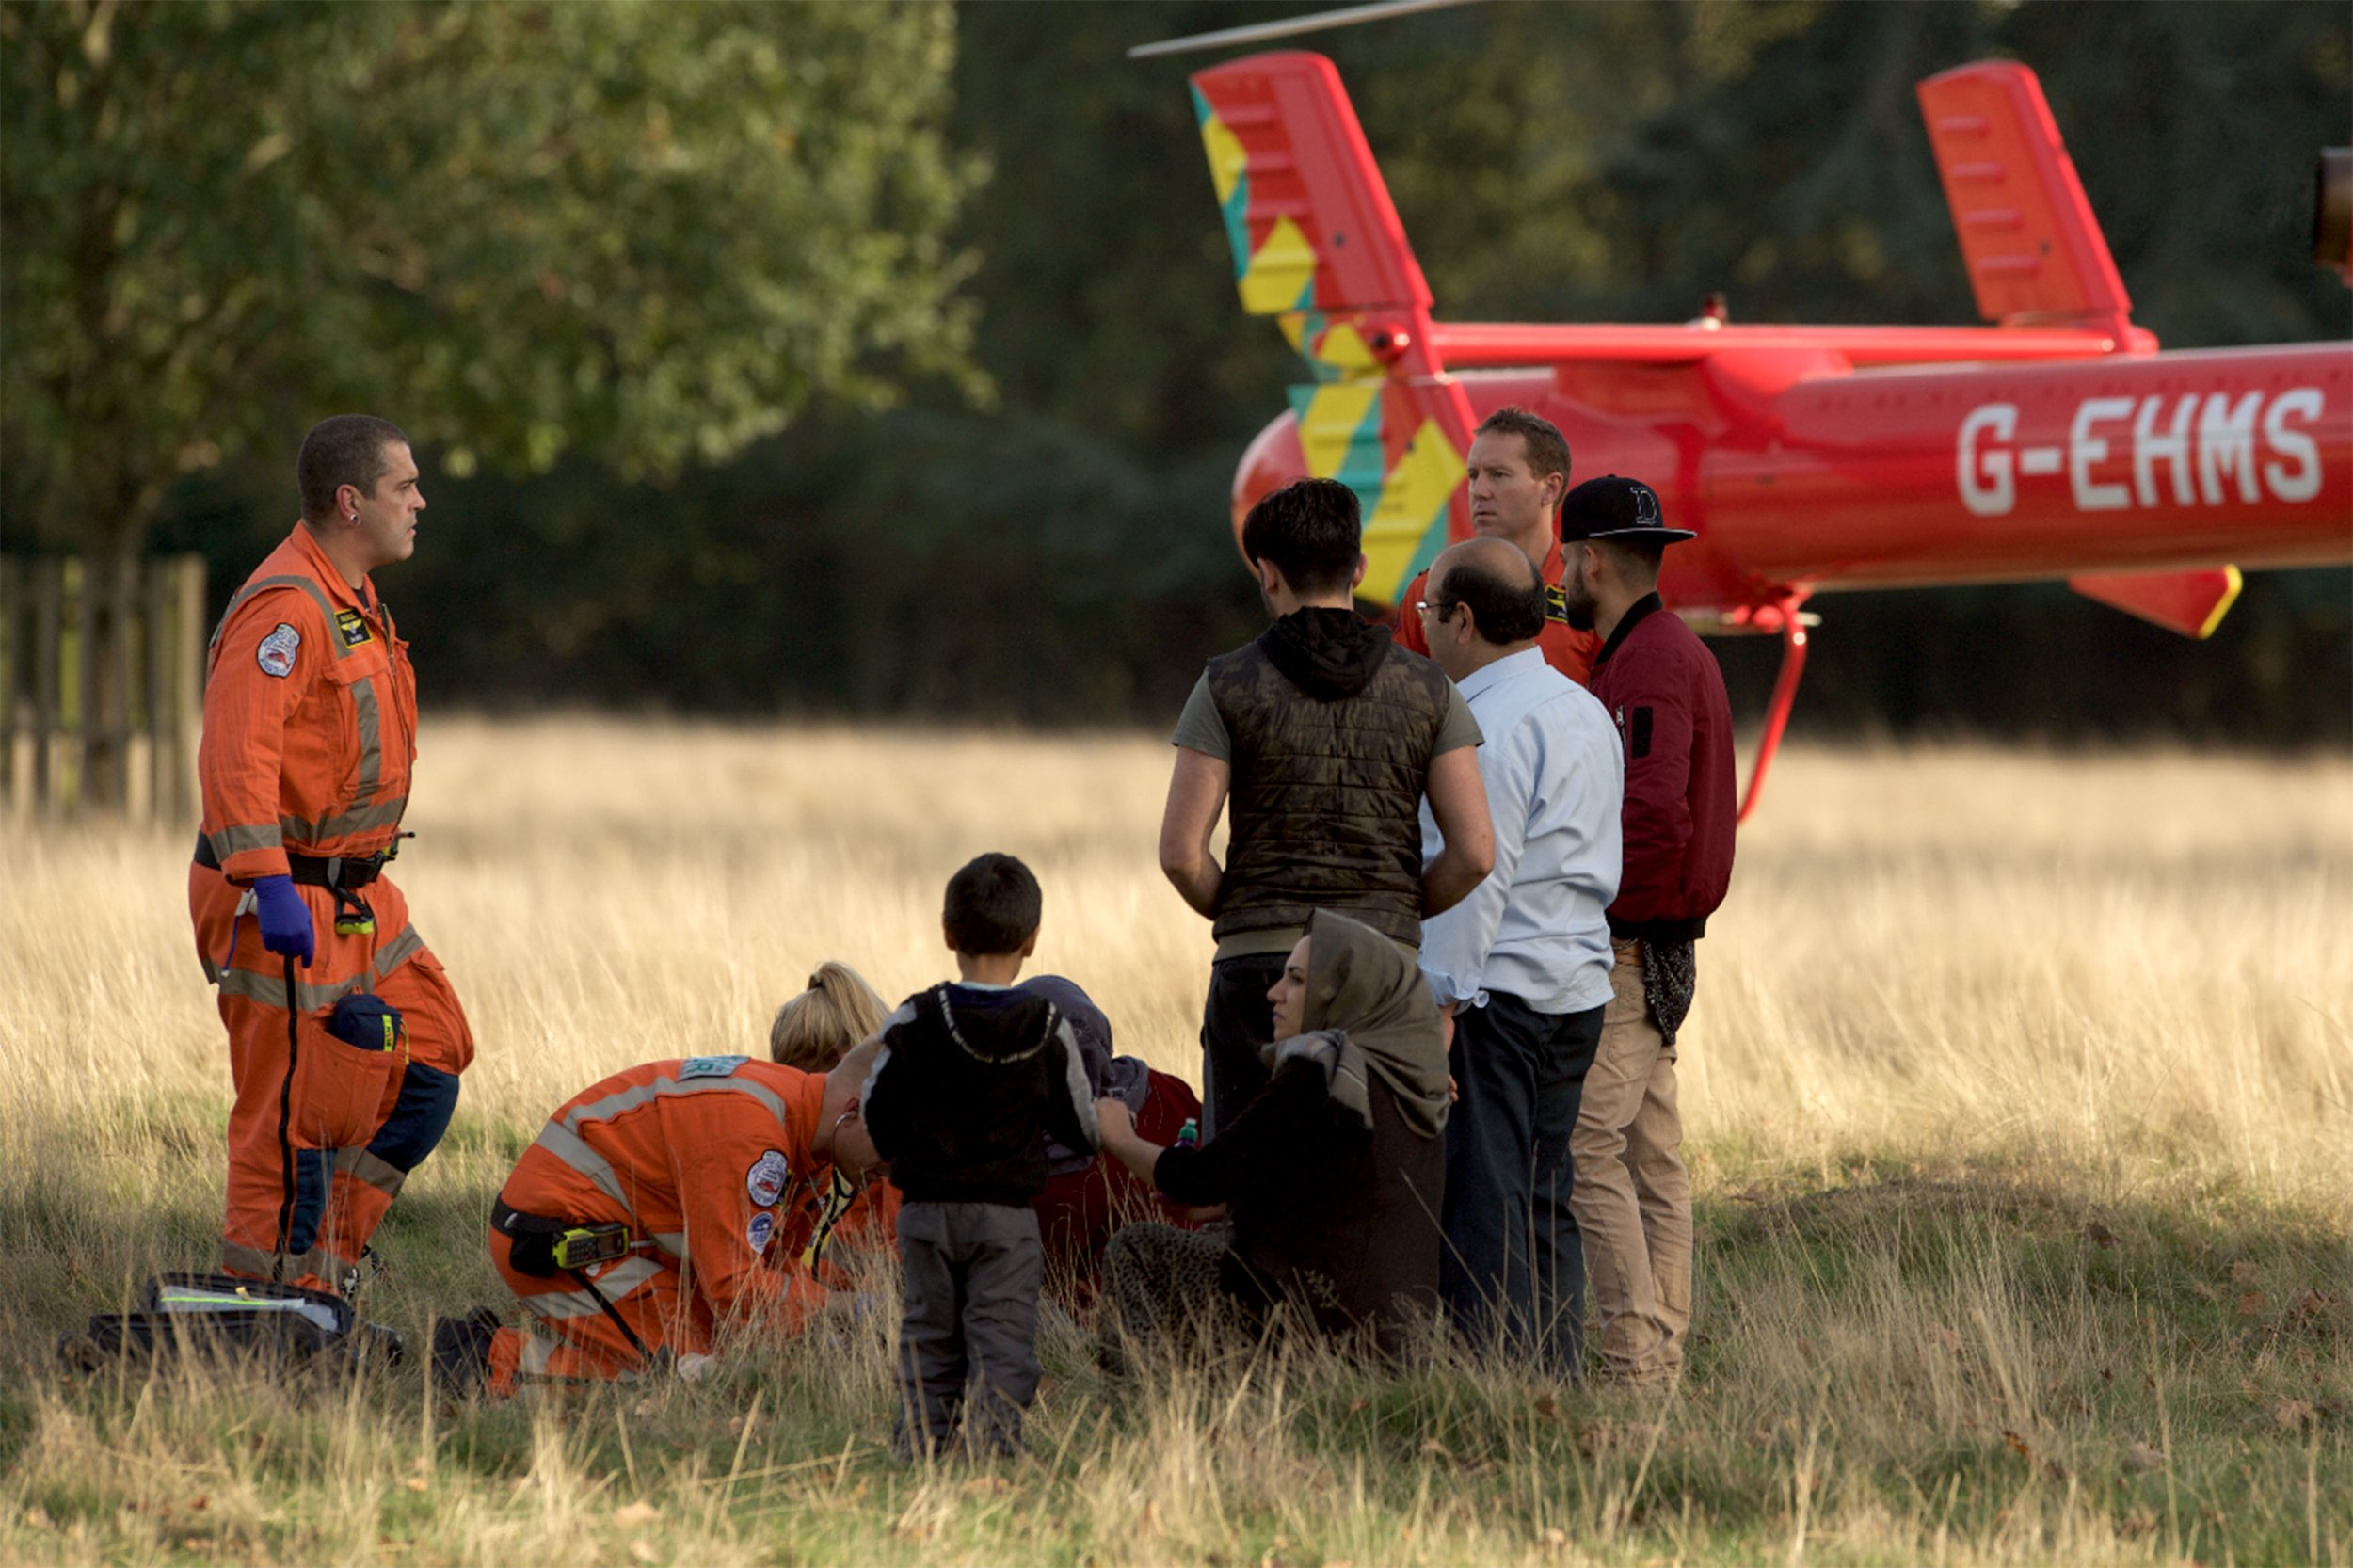 *MANDATORY BYLINE**PIXELATE/BLUR FACES TO OWN DISCRETION* PIC FROM Robert Piper /Caters News - (PICTURED: 24.10.2018 Young girl age 7-8 sustained injuries to her thigh by the antlers of a deerin the Bushy Park, Kingston upon Thames late this afternoon . The girl was attended to by the Air Ambulance Paramedics in the Park and taken by ambulance to one of the local Hospitals (Kingston upon Thames)) -The young girl sustained injuries to her thigh by the antlers of a deer in the Bushy Park, Kingston upon Thames, late this afternoon (24-10- 2018) at 15.55 .The paramedics of Air ambulance attended the little girl, that was later transferred to the nearest hospital.SEE CATERS COPY